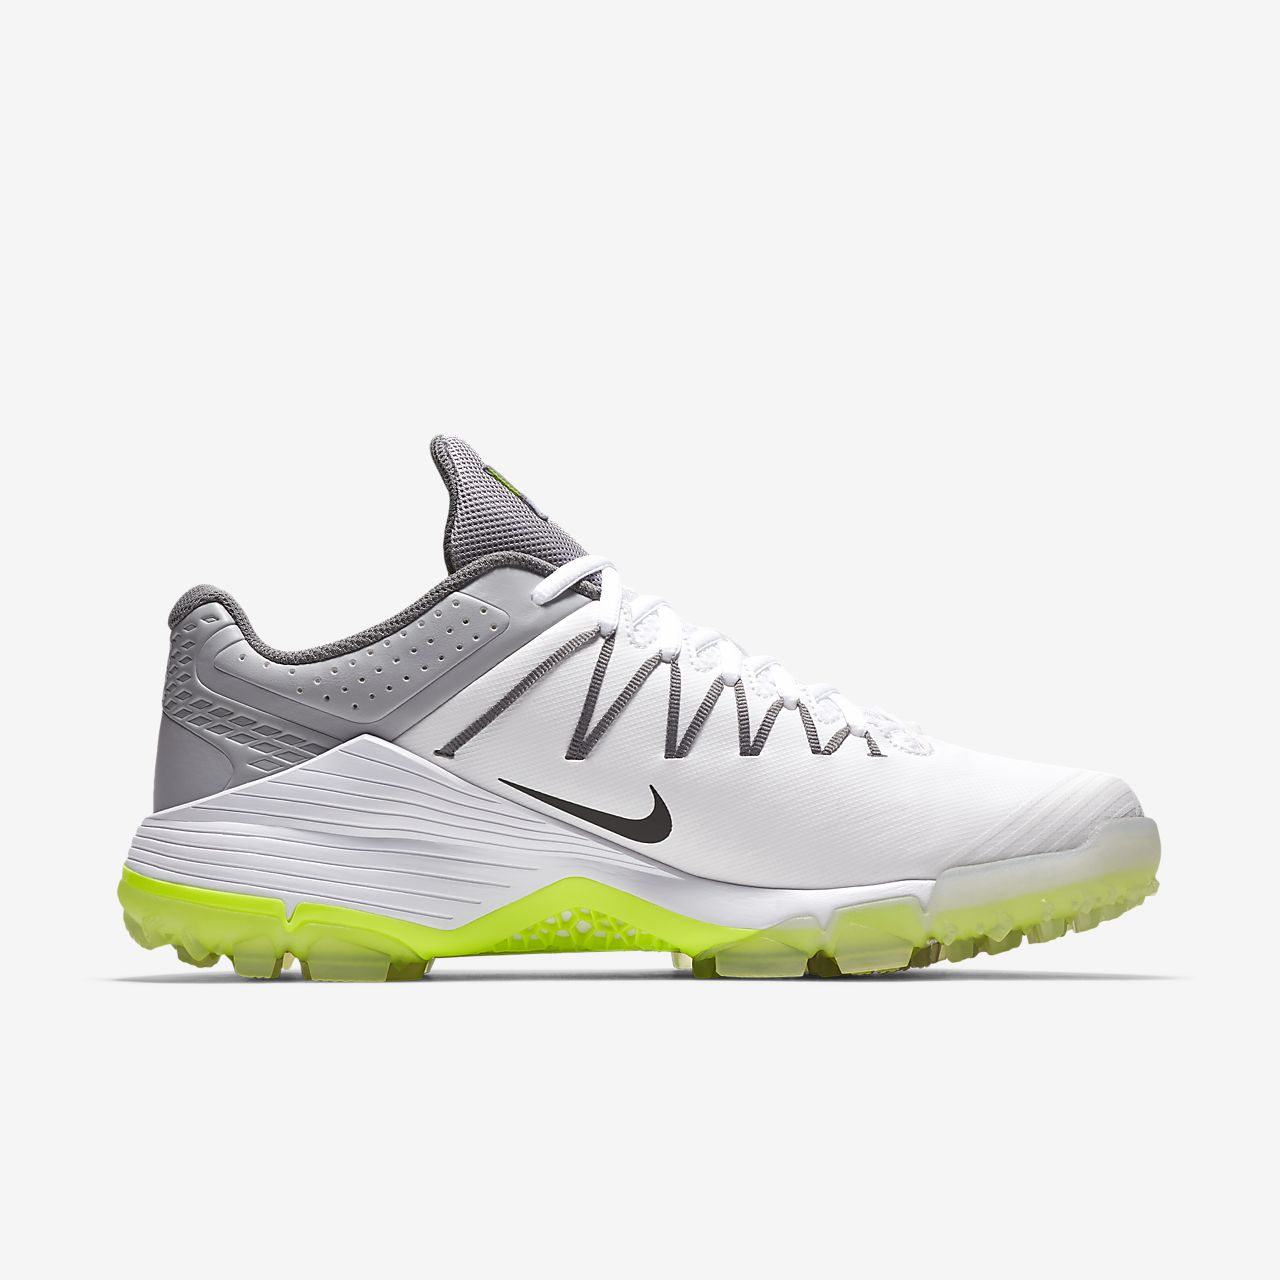 pretty nice 830f5 5ae2a ... Nike Domain 2 NS Unisex Cricket Shoe